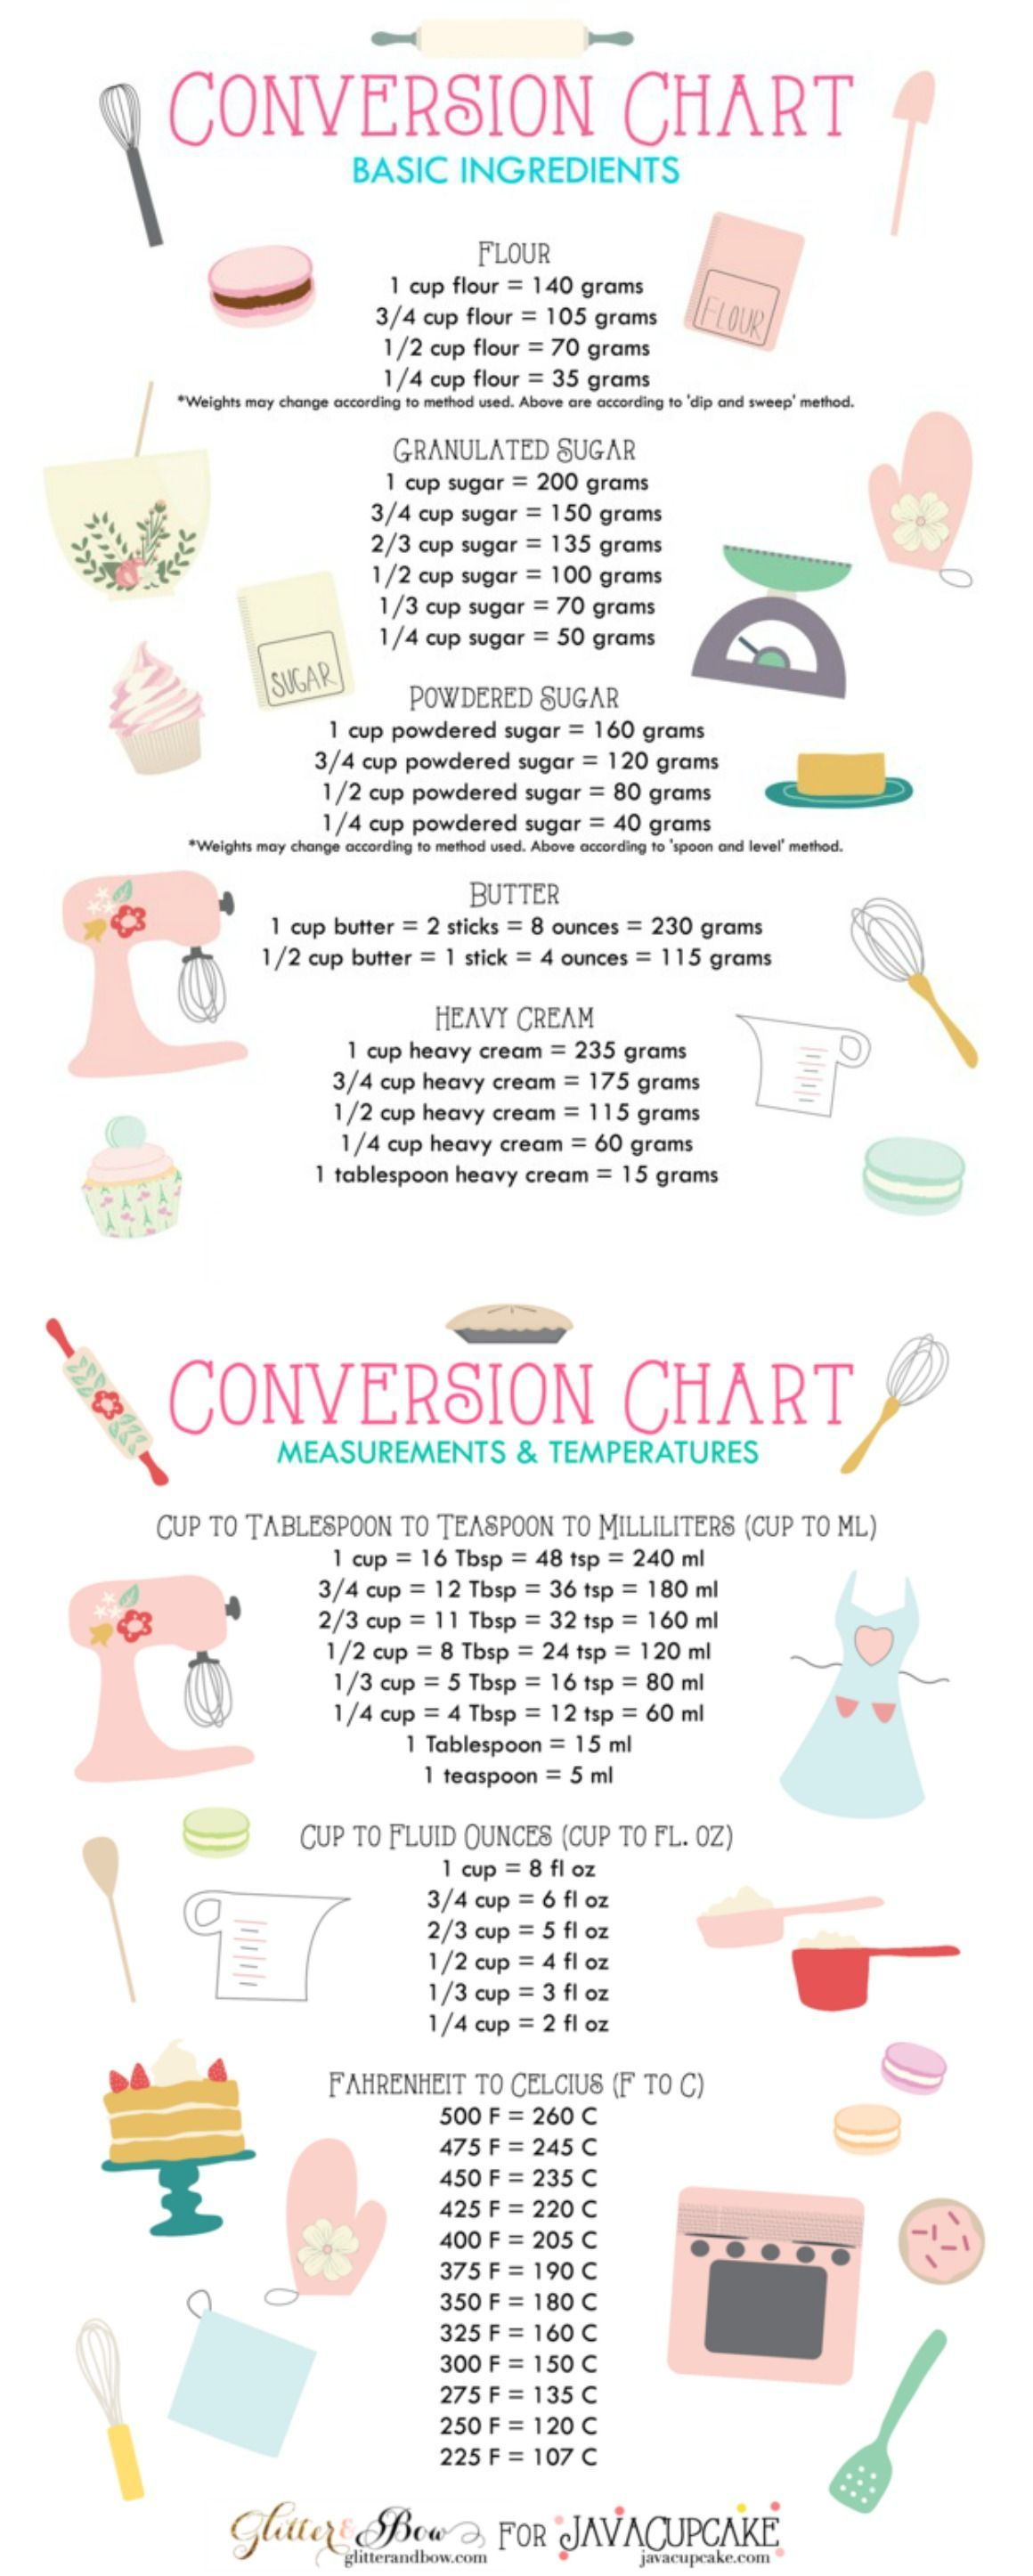 You Have To Check Out These 10 Cooking Hacks Ive Already Tried A Few And Its Save Me A Lot Of Time I Alr Cooking Measurements Baking Tips Cooking Conversions